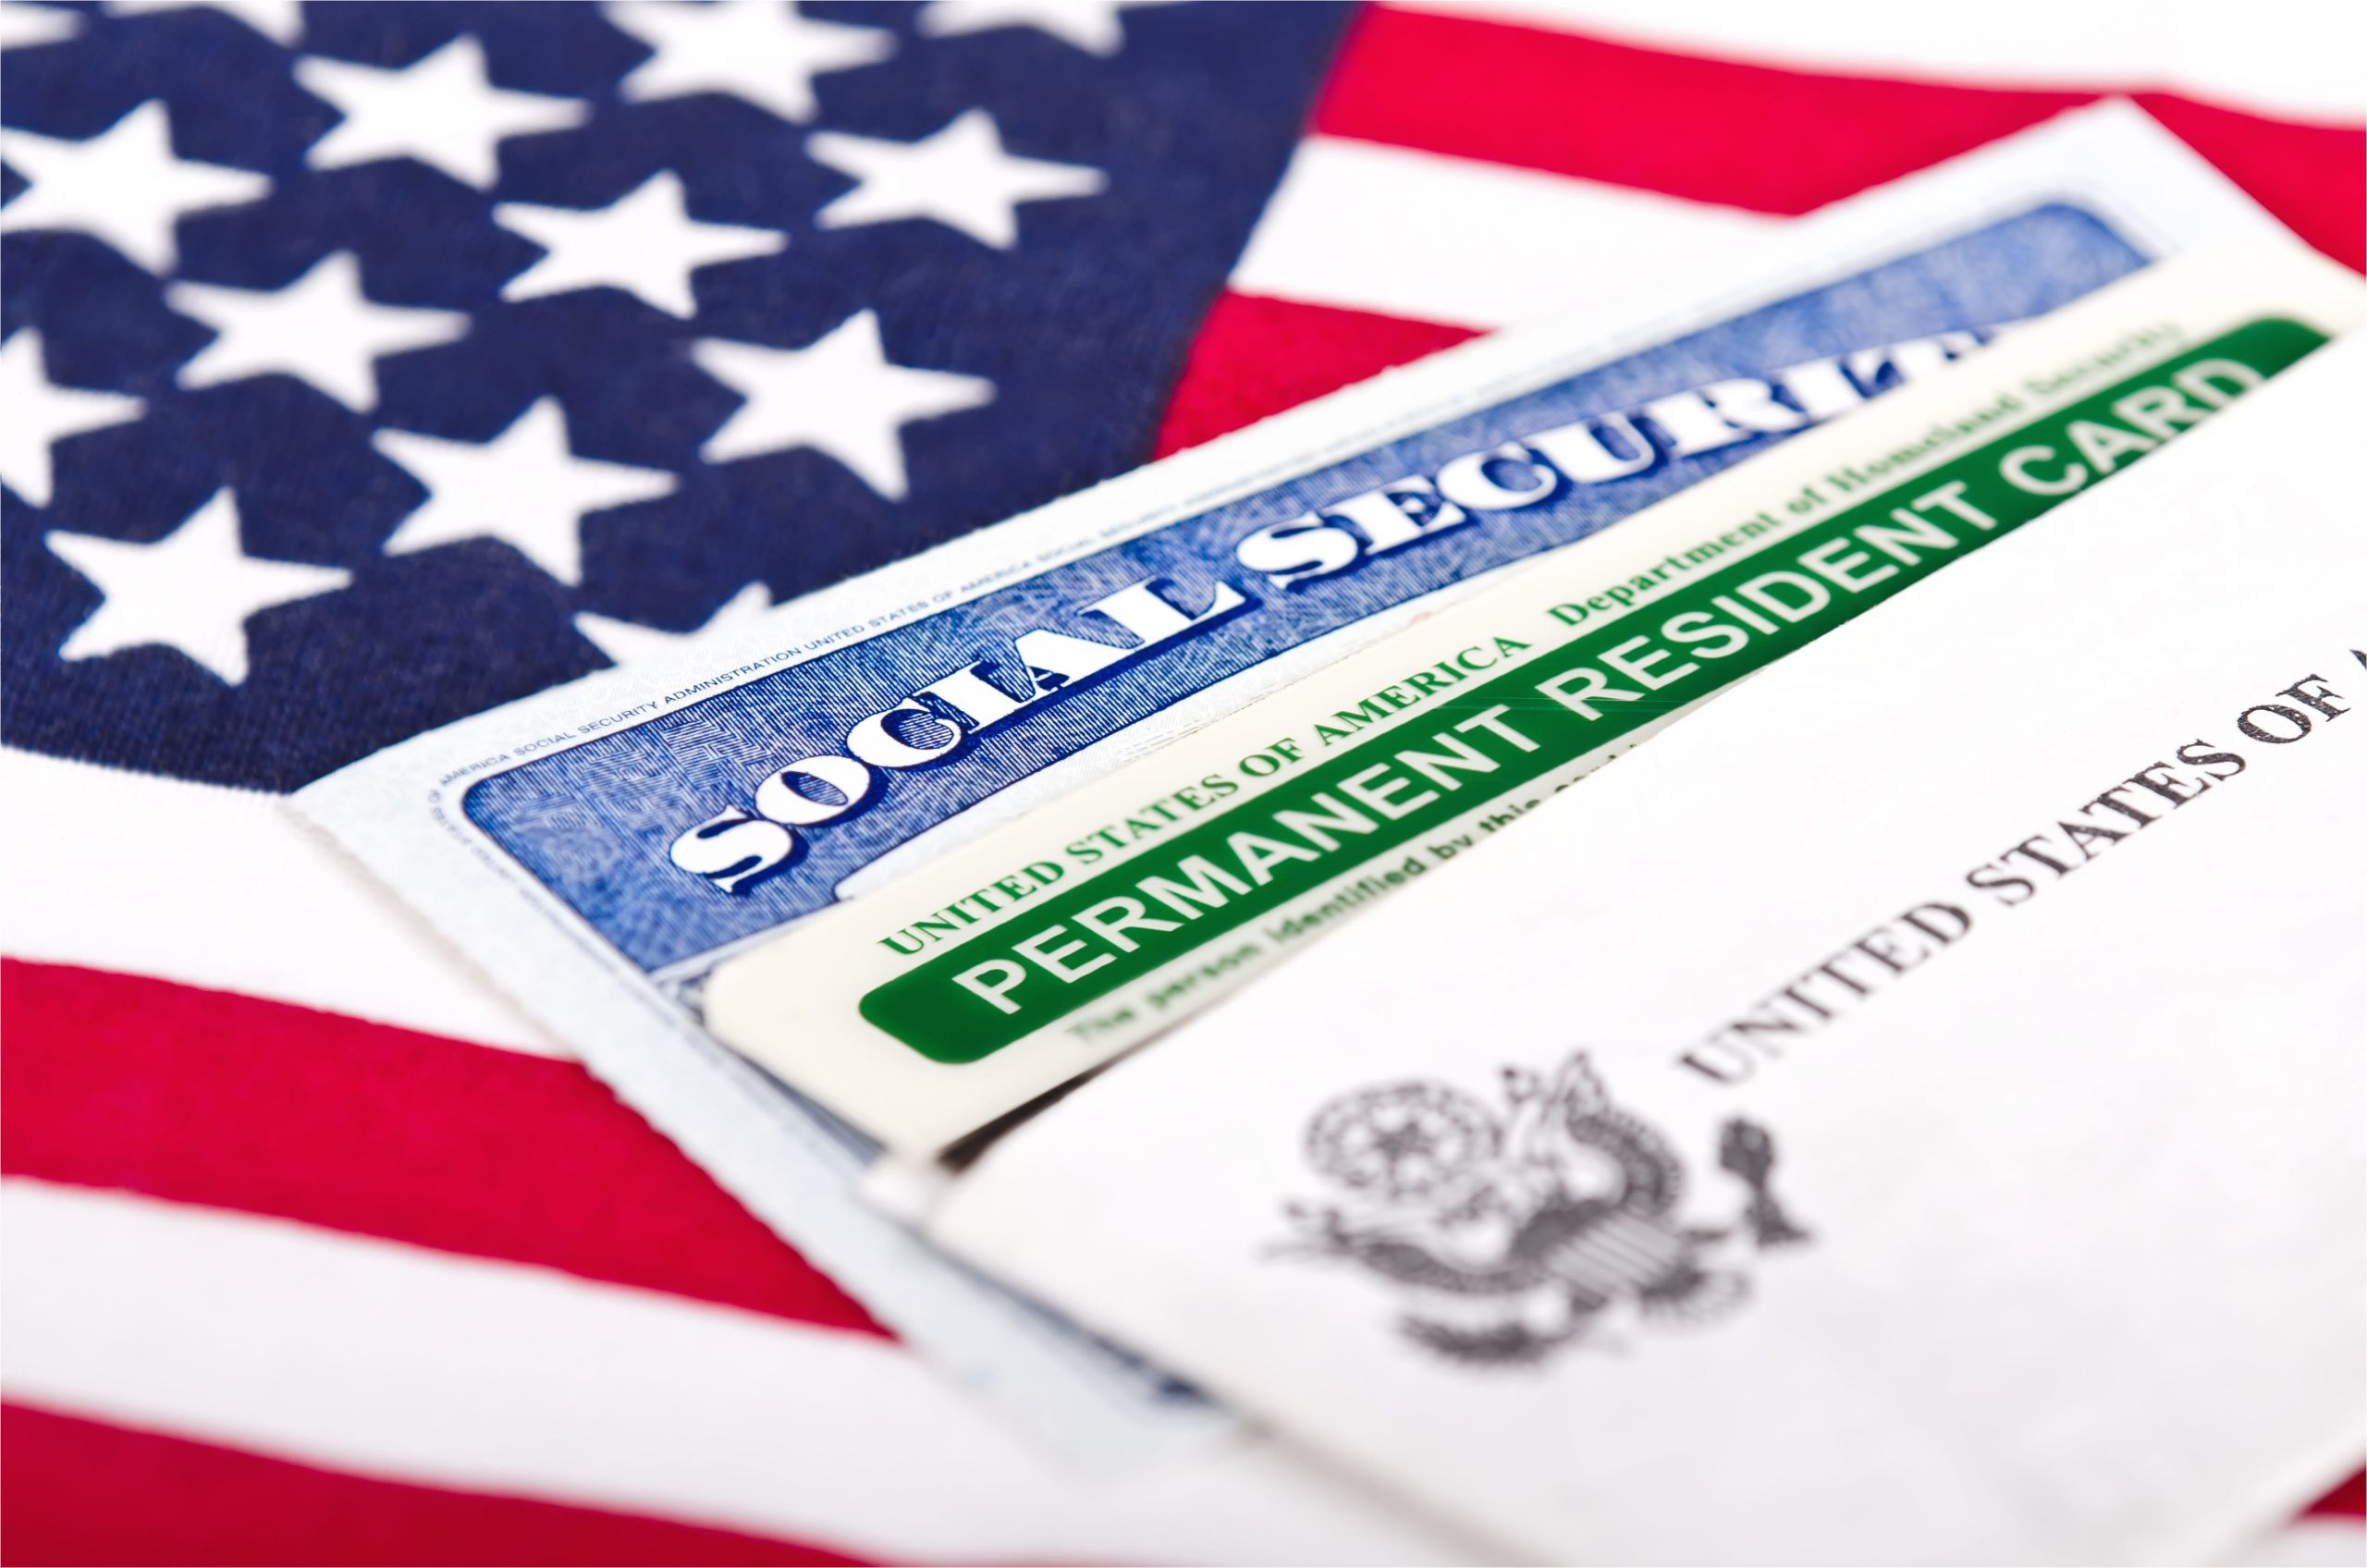 green card documents db36efb21eaee60aa43ec7a2b62973f0fb45258dc70db26adc8616083bc267be jpg